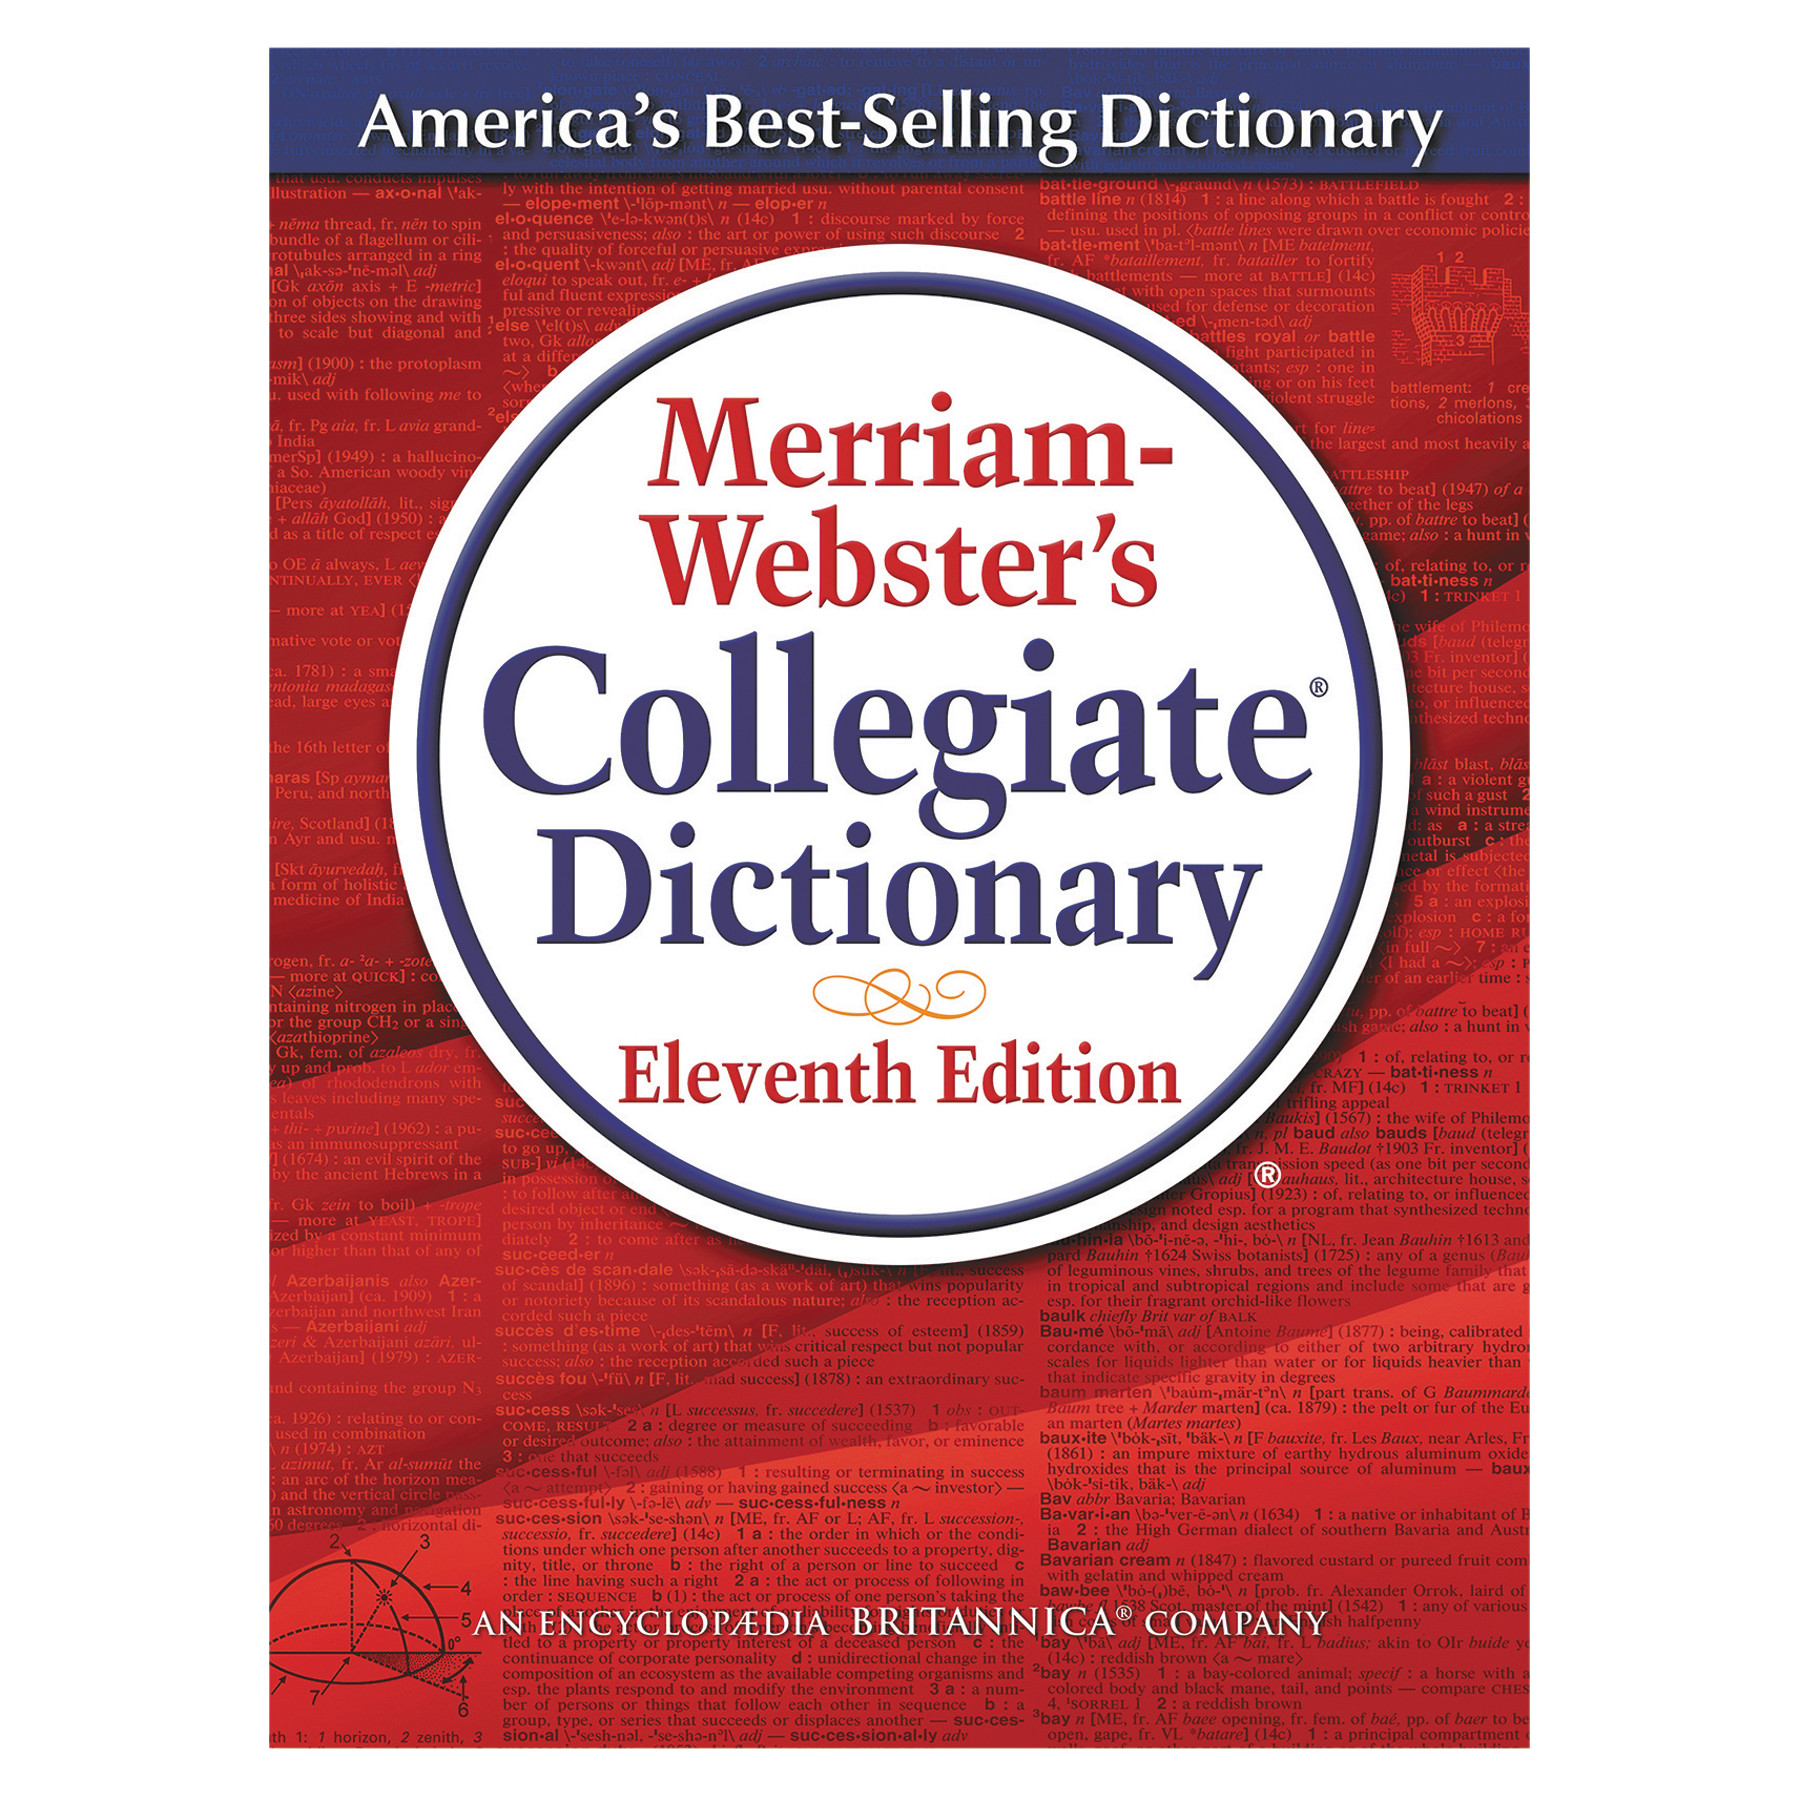 Merriam Webster Merriam-Webster's Collegiate Dictionary, 11th Edition, Hardcover, 1,664 Pages -MER8095